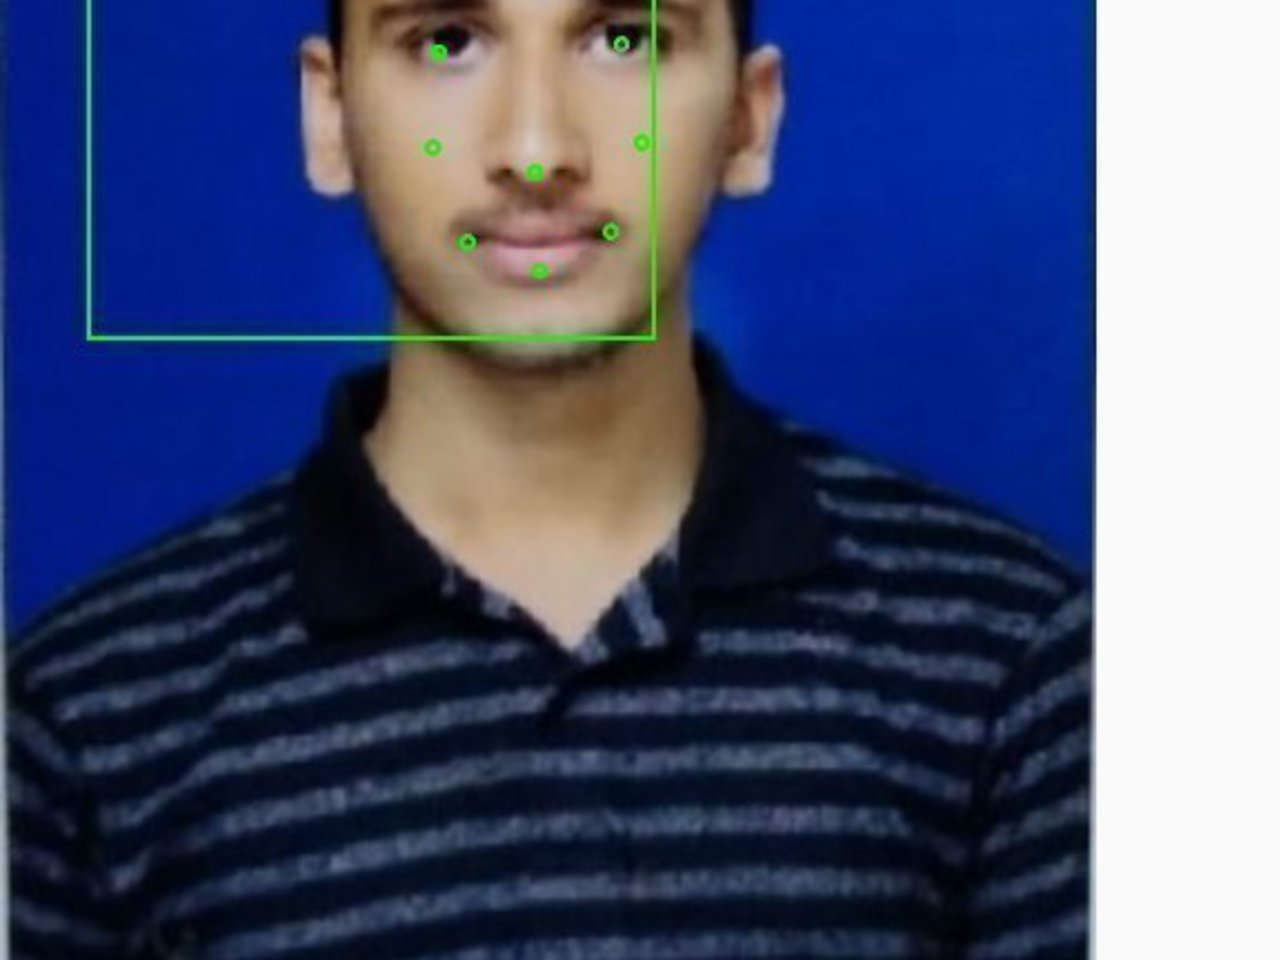 Face detection Barcode Based login systems android app | Intel DevMesh